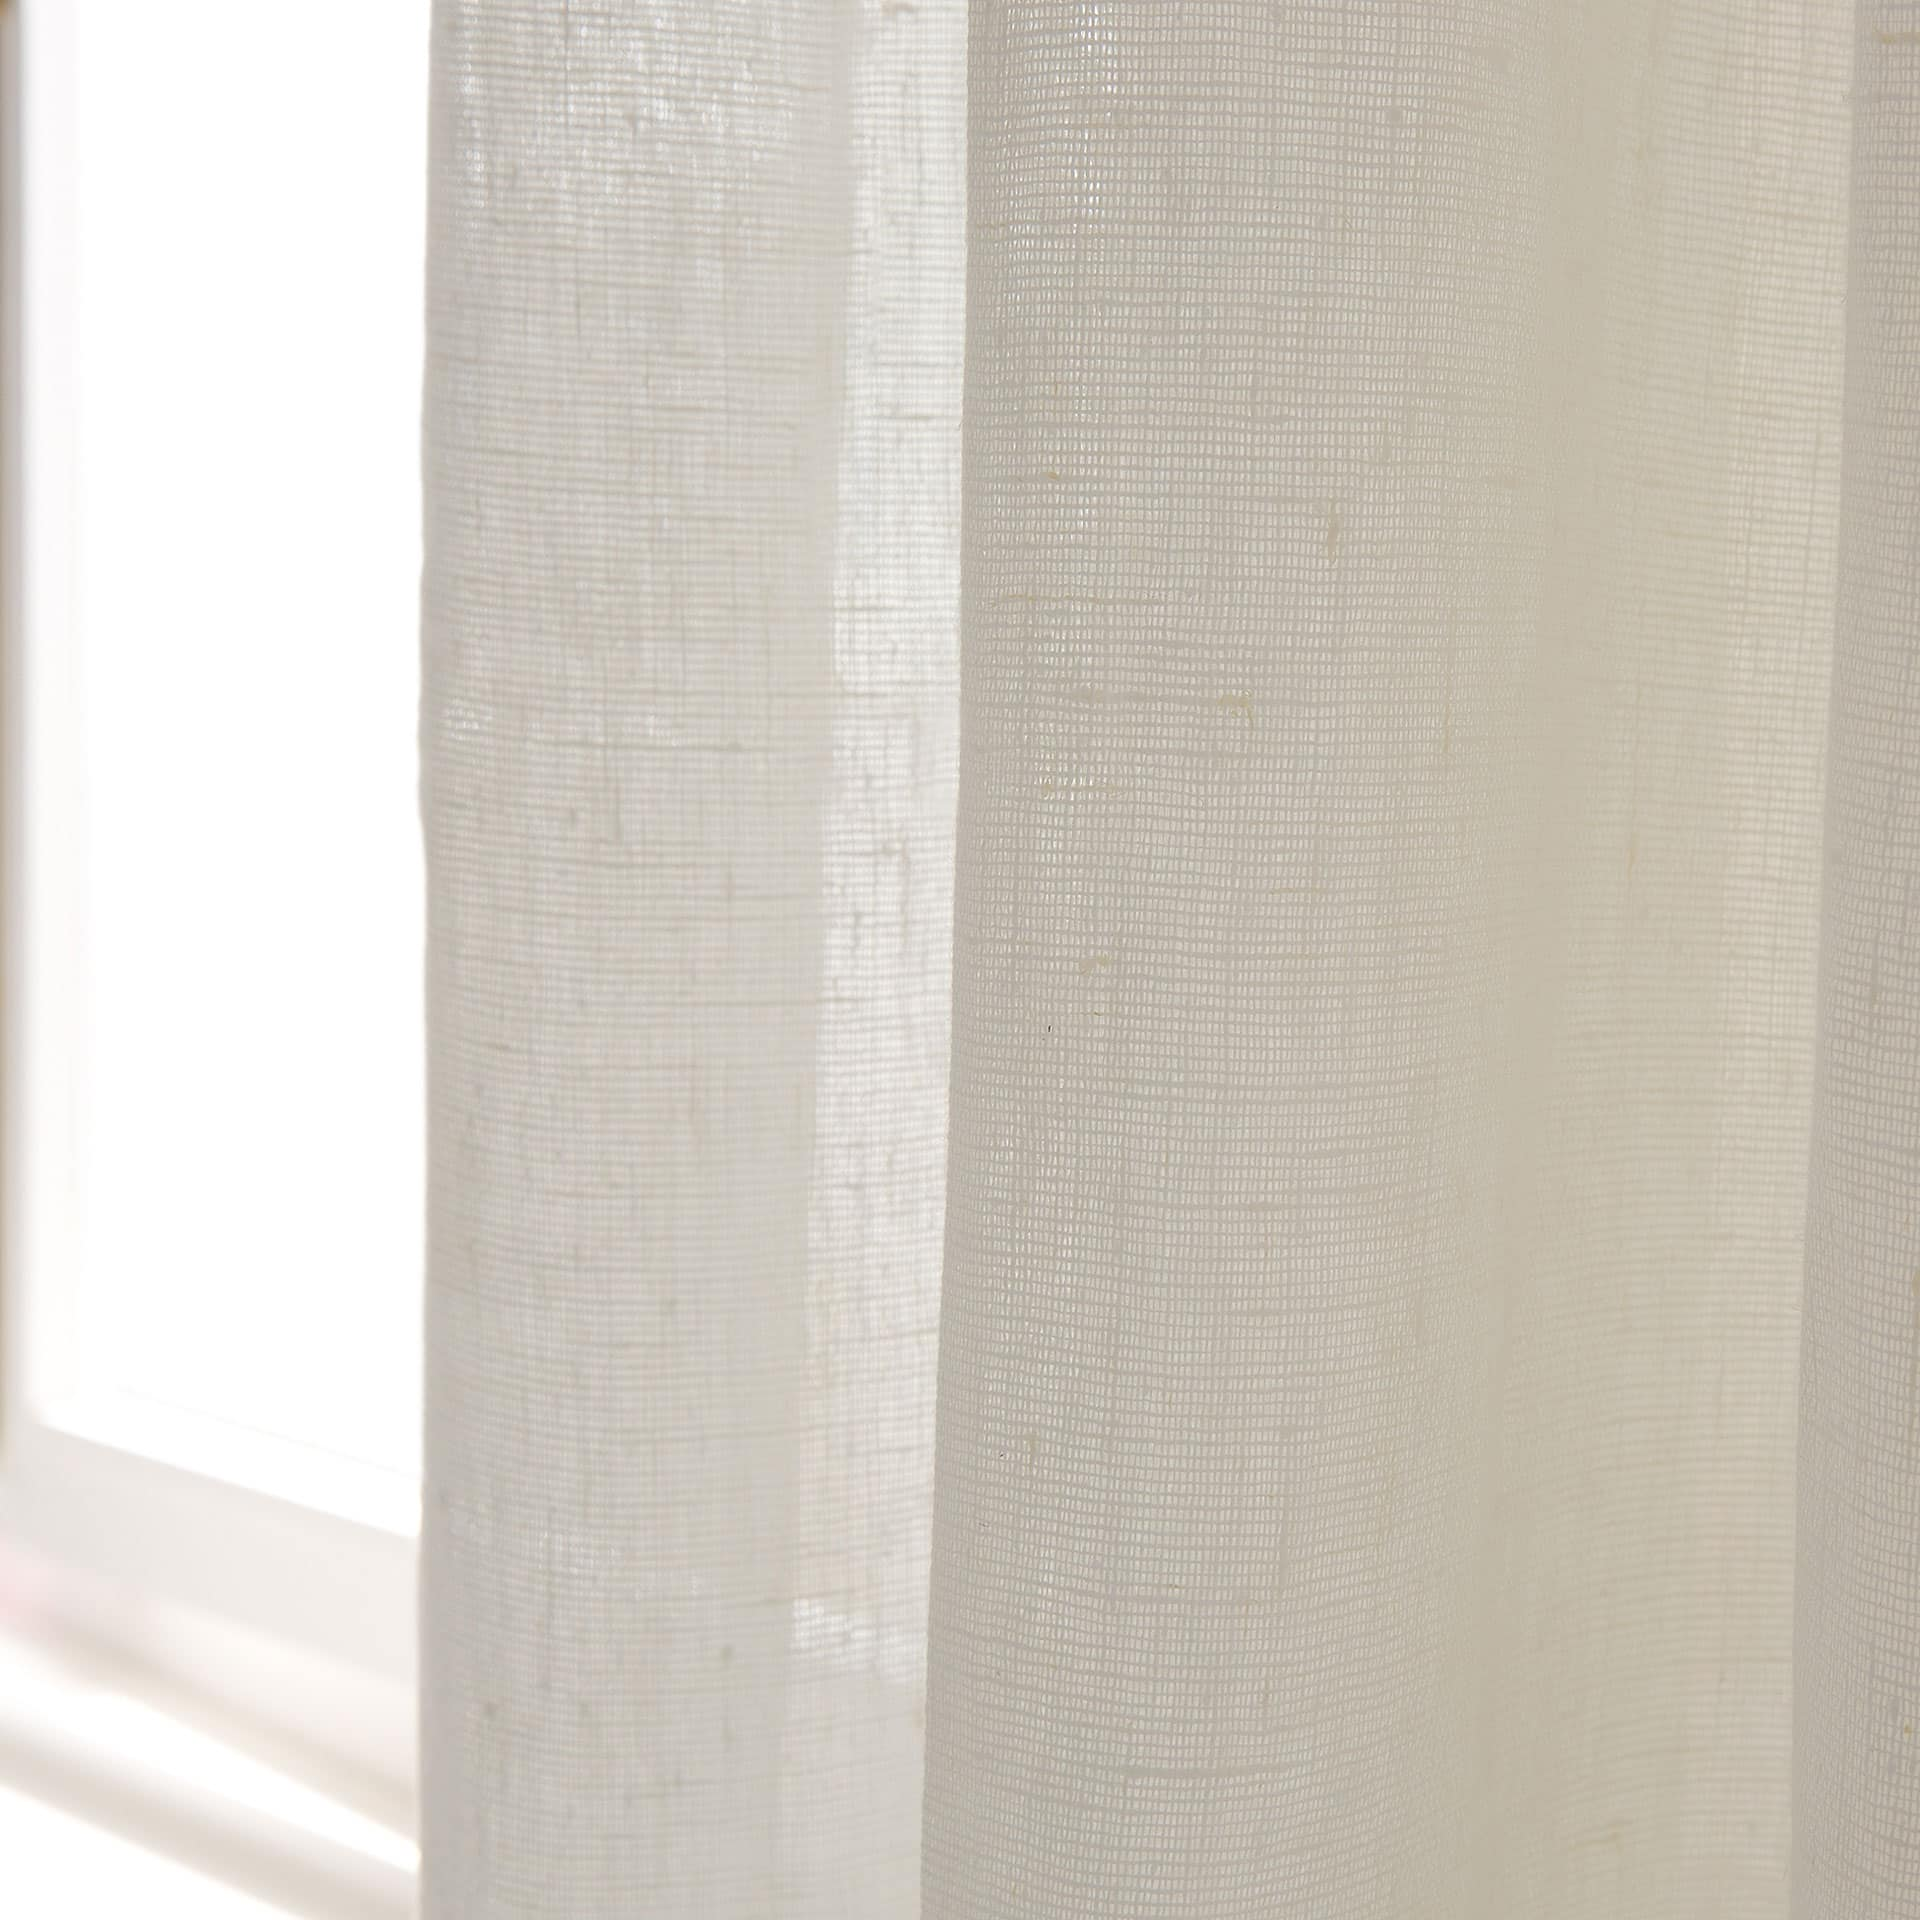 image 2 of the product offwhite linen curtain